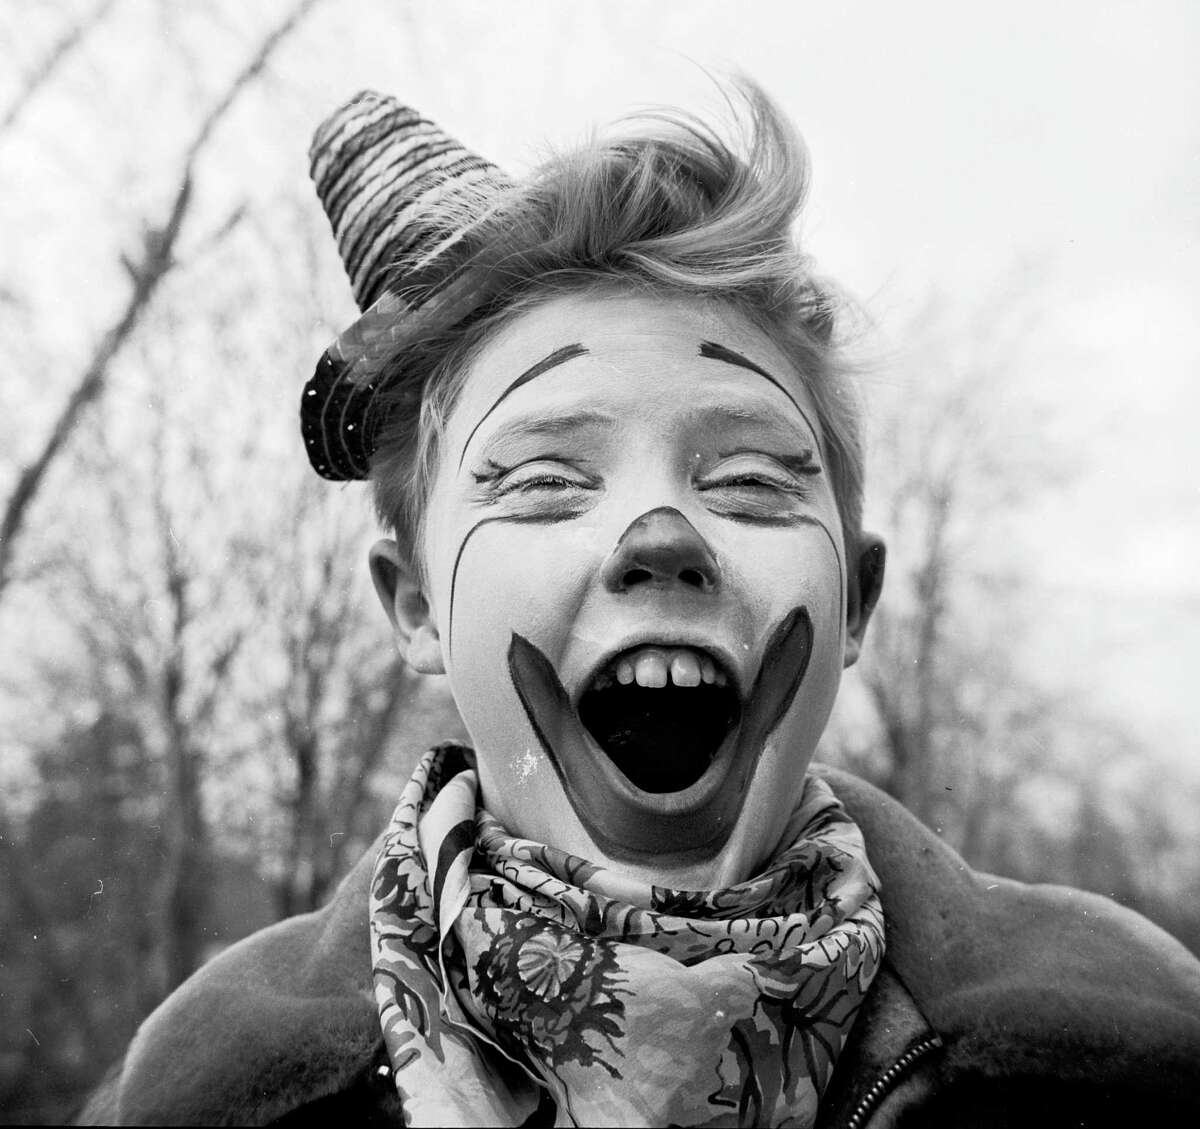 Circa 1955: Young clown Ronnie Walken, later film star Christopher Walken, pulls a face for the camera.